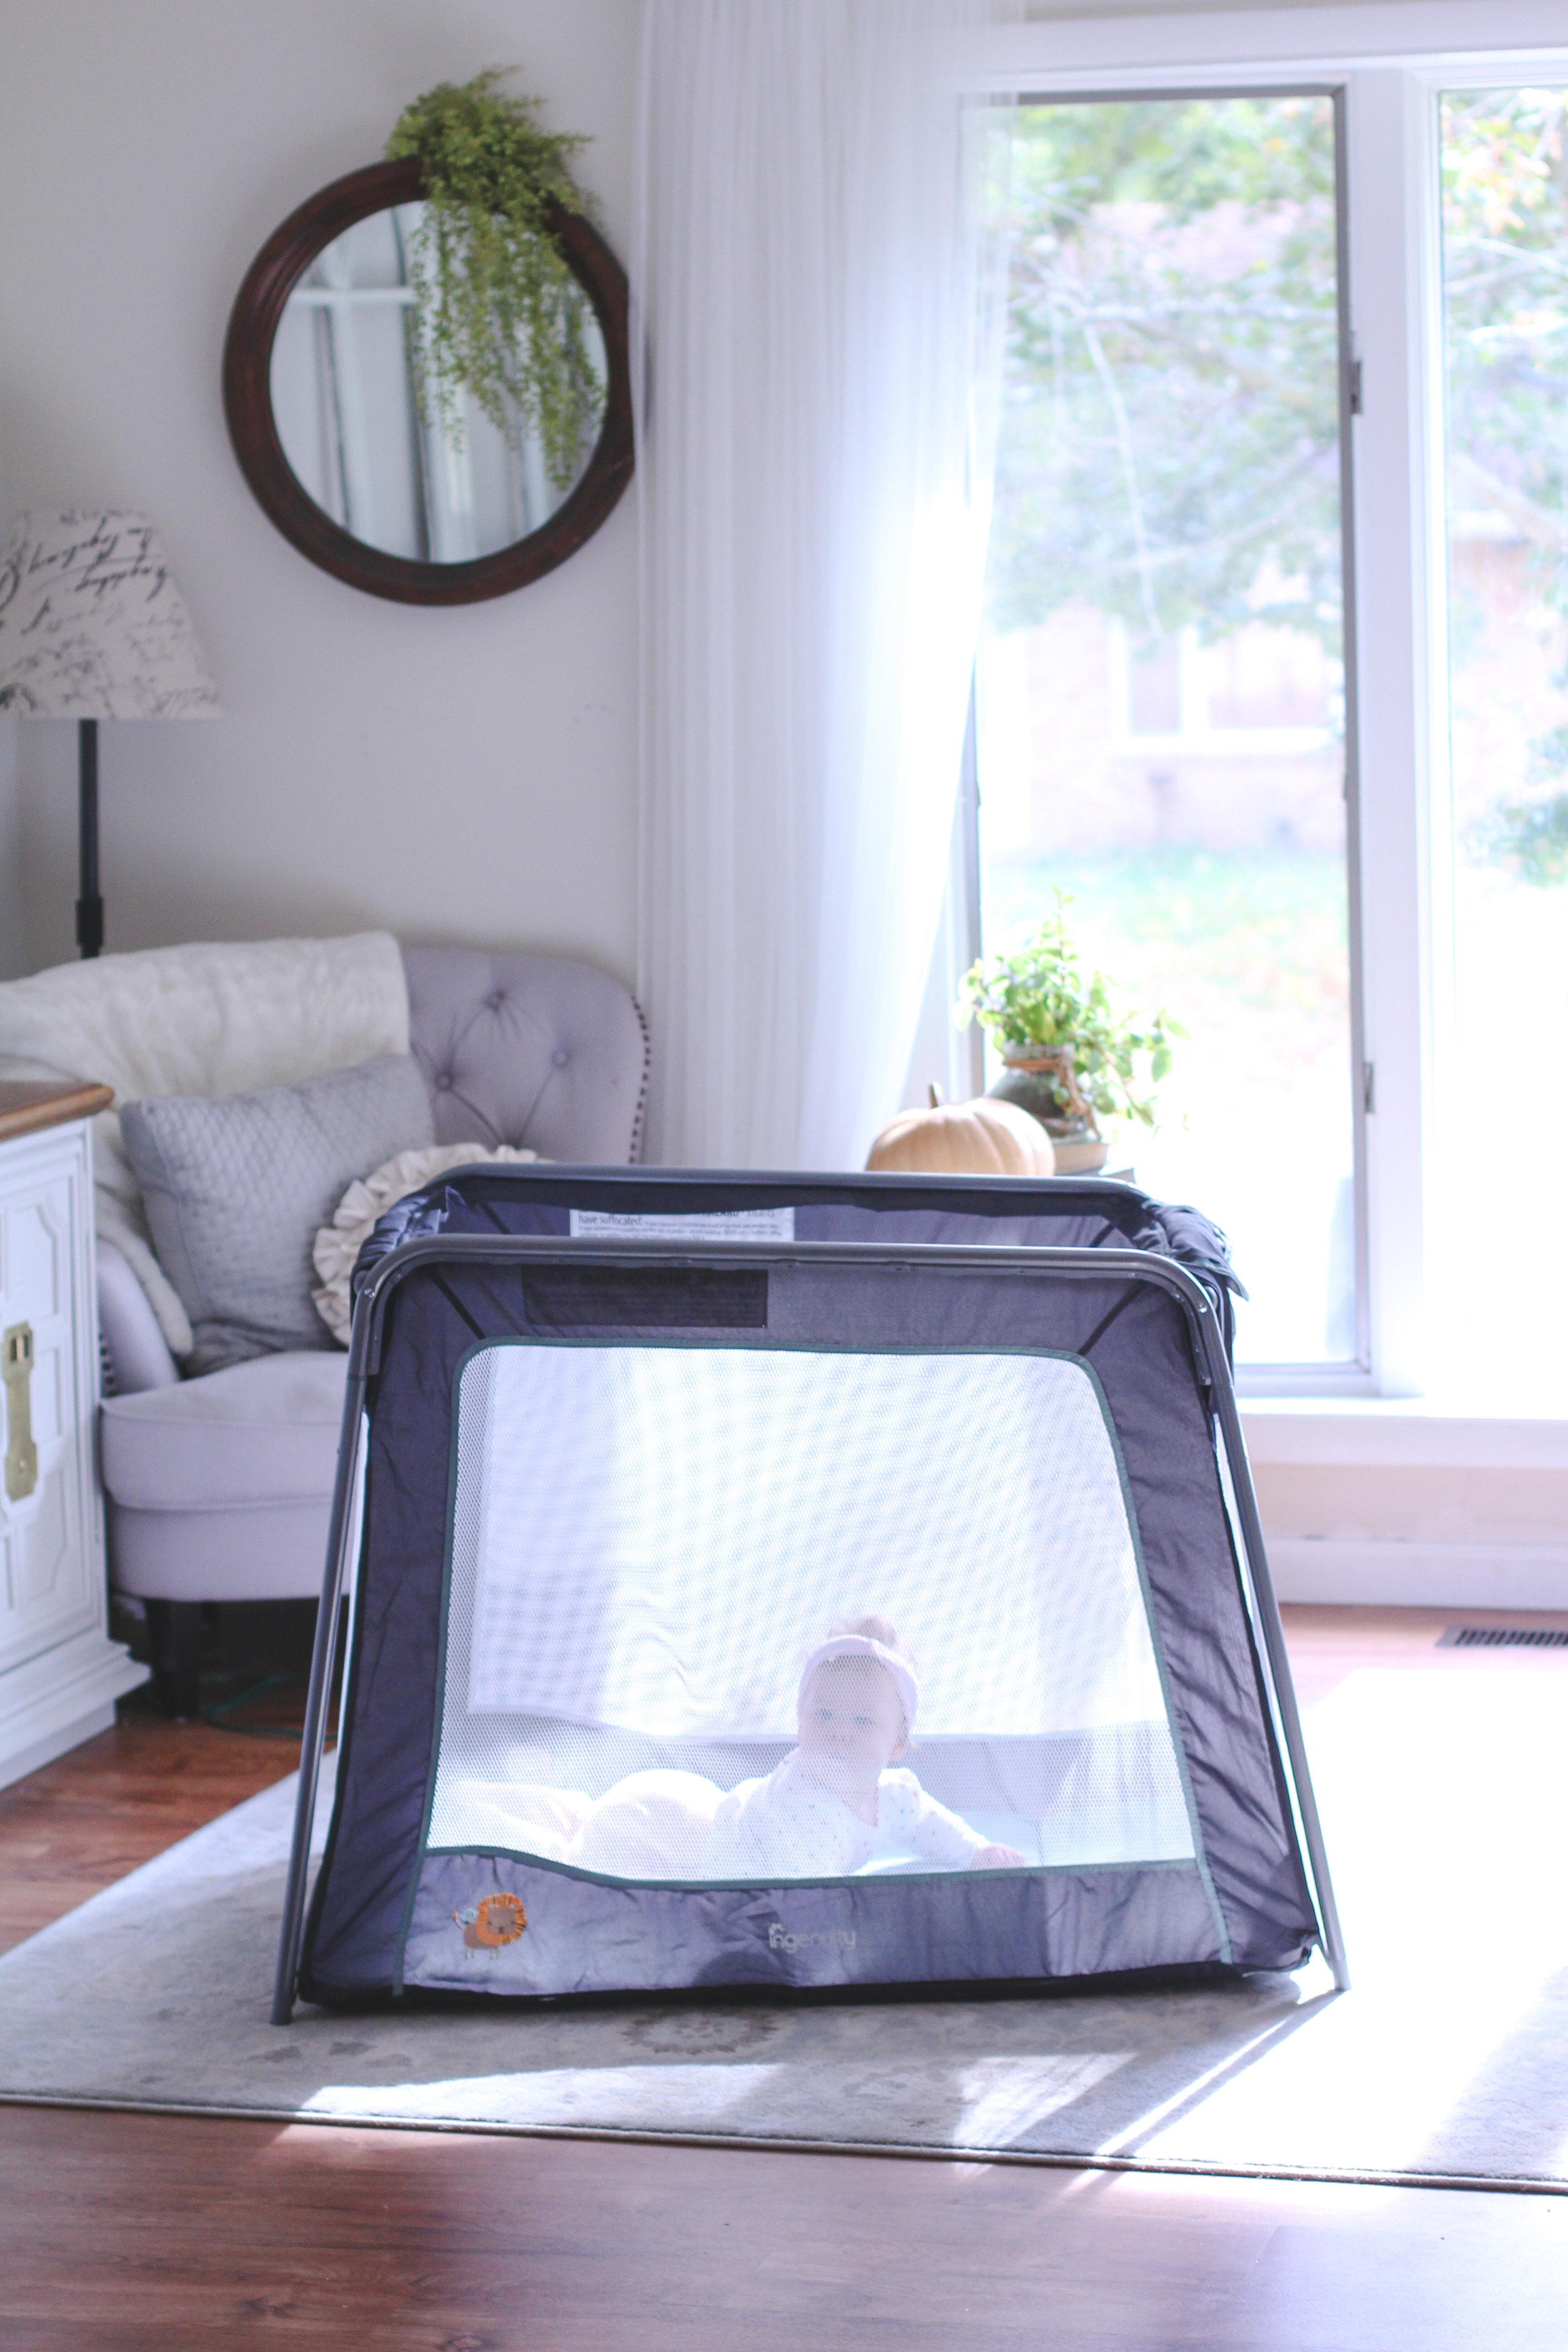 My Must Have Travel Crib by Ingenuity